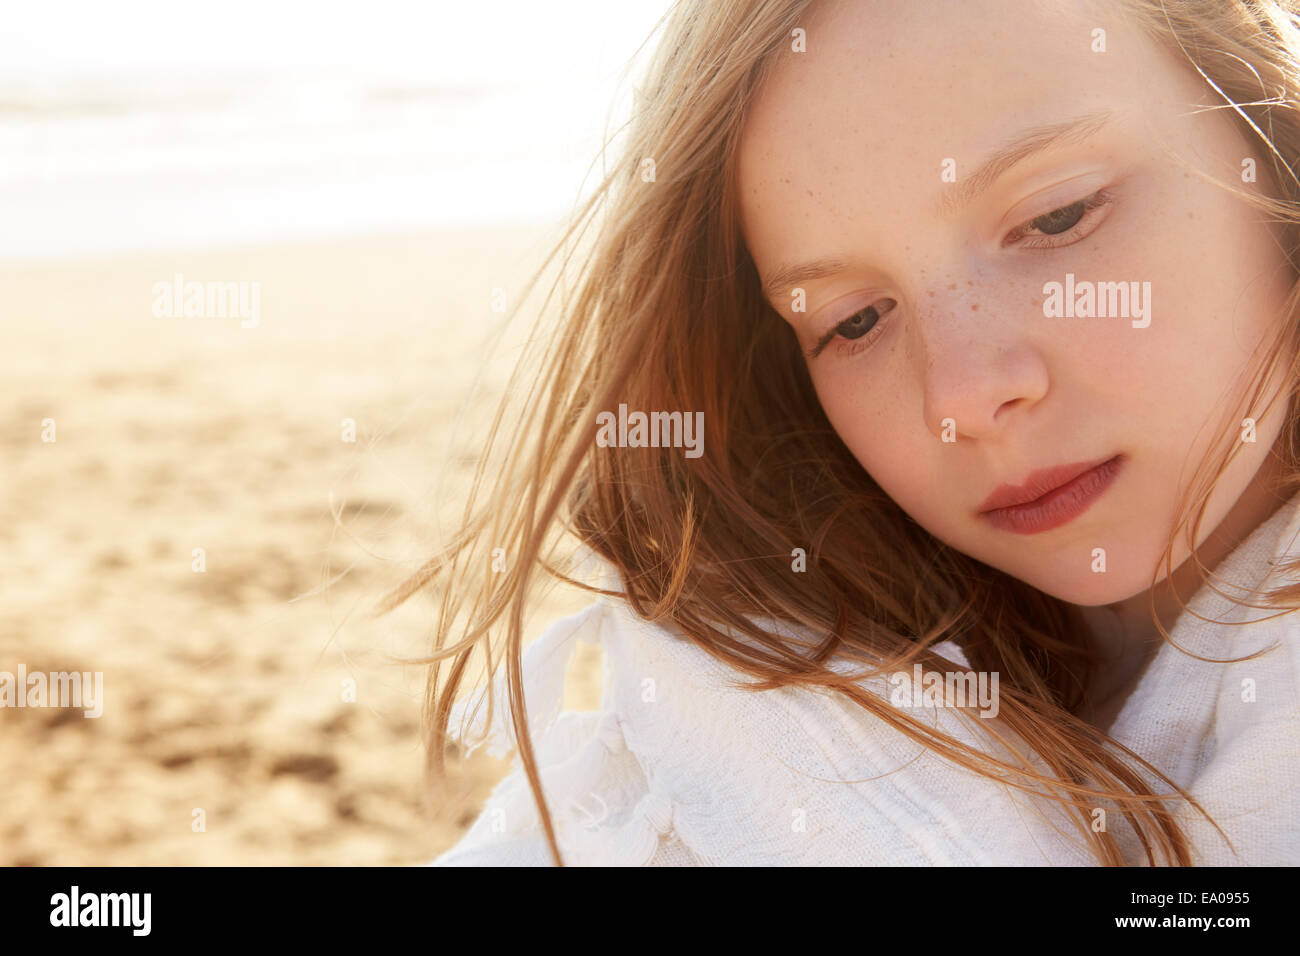 Close up portrait of girl wrapped in blanket on beach - Stock Image